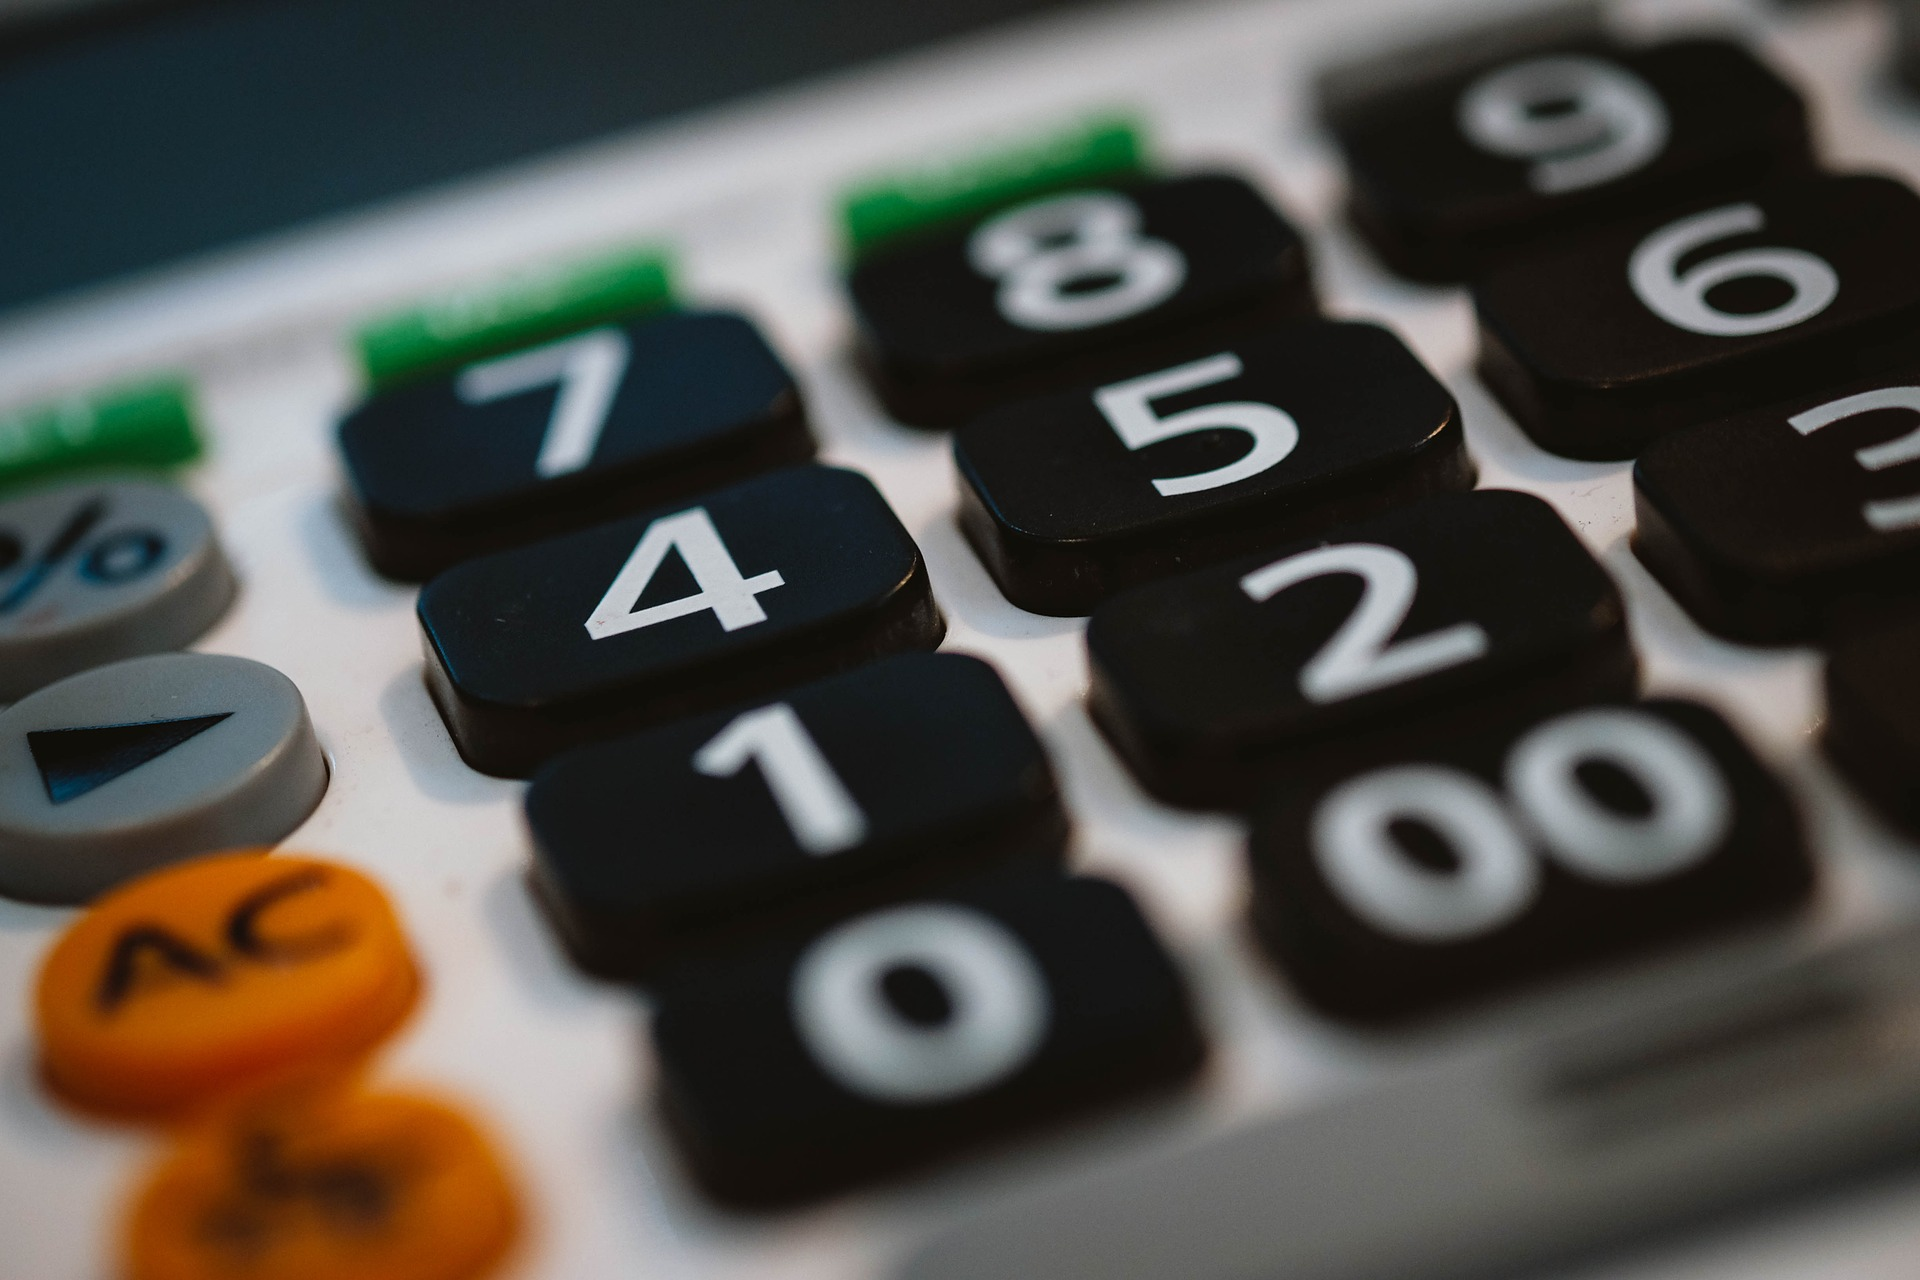 Close up view of a calculator